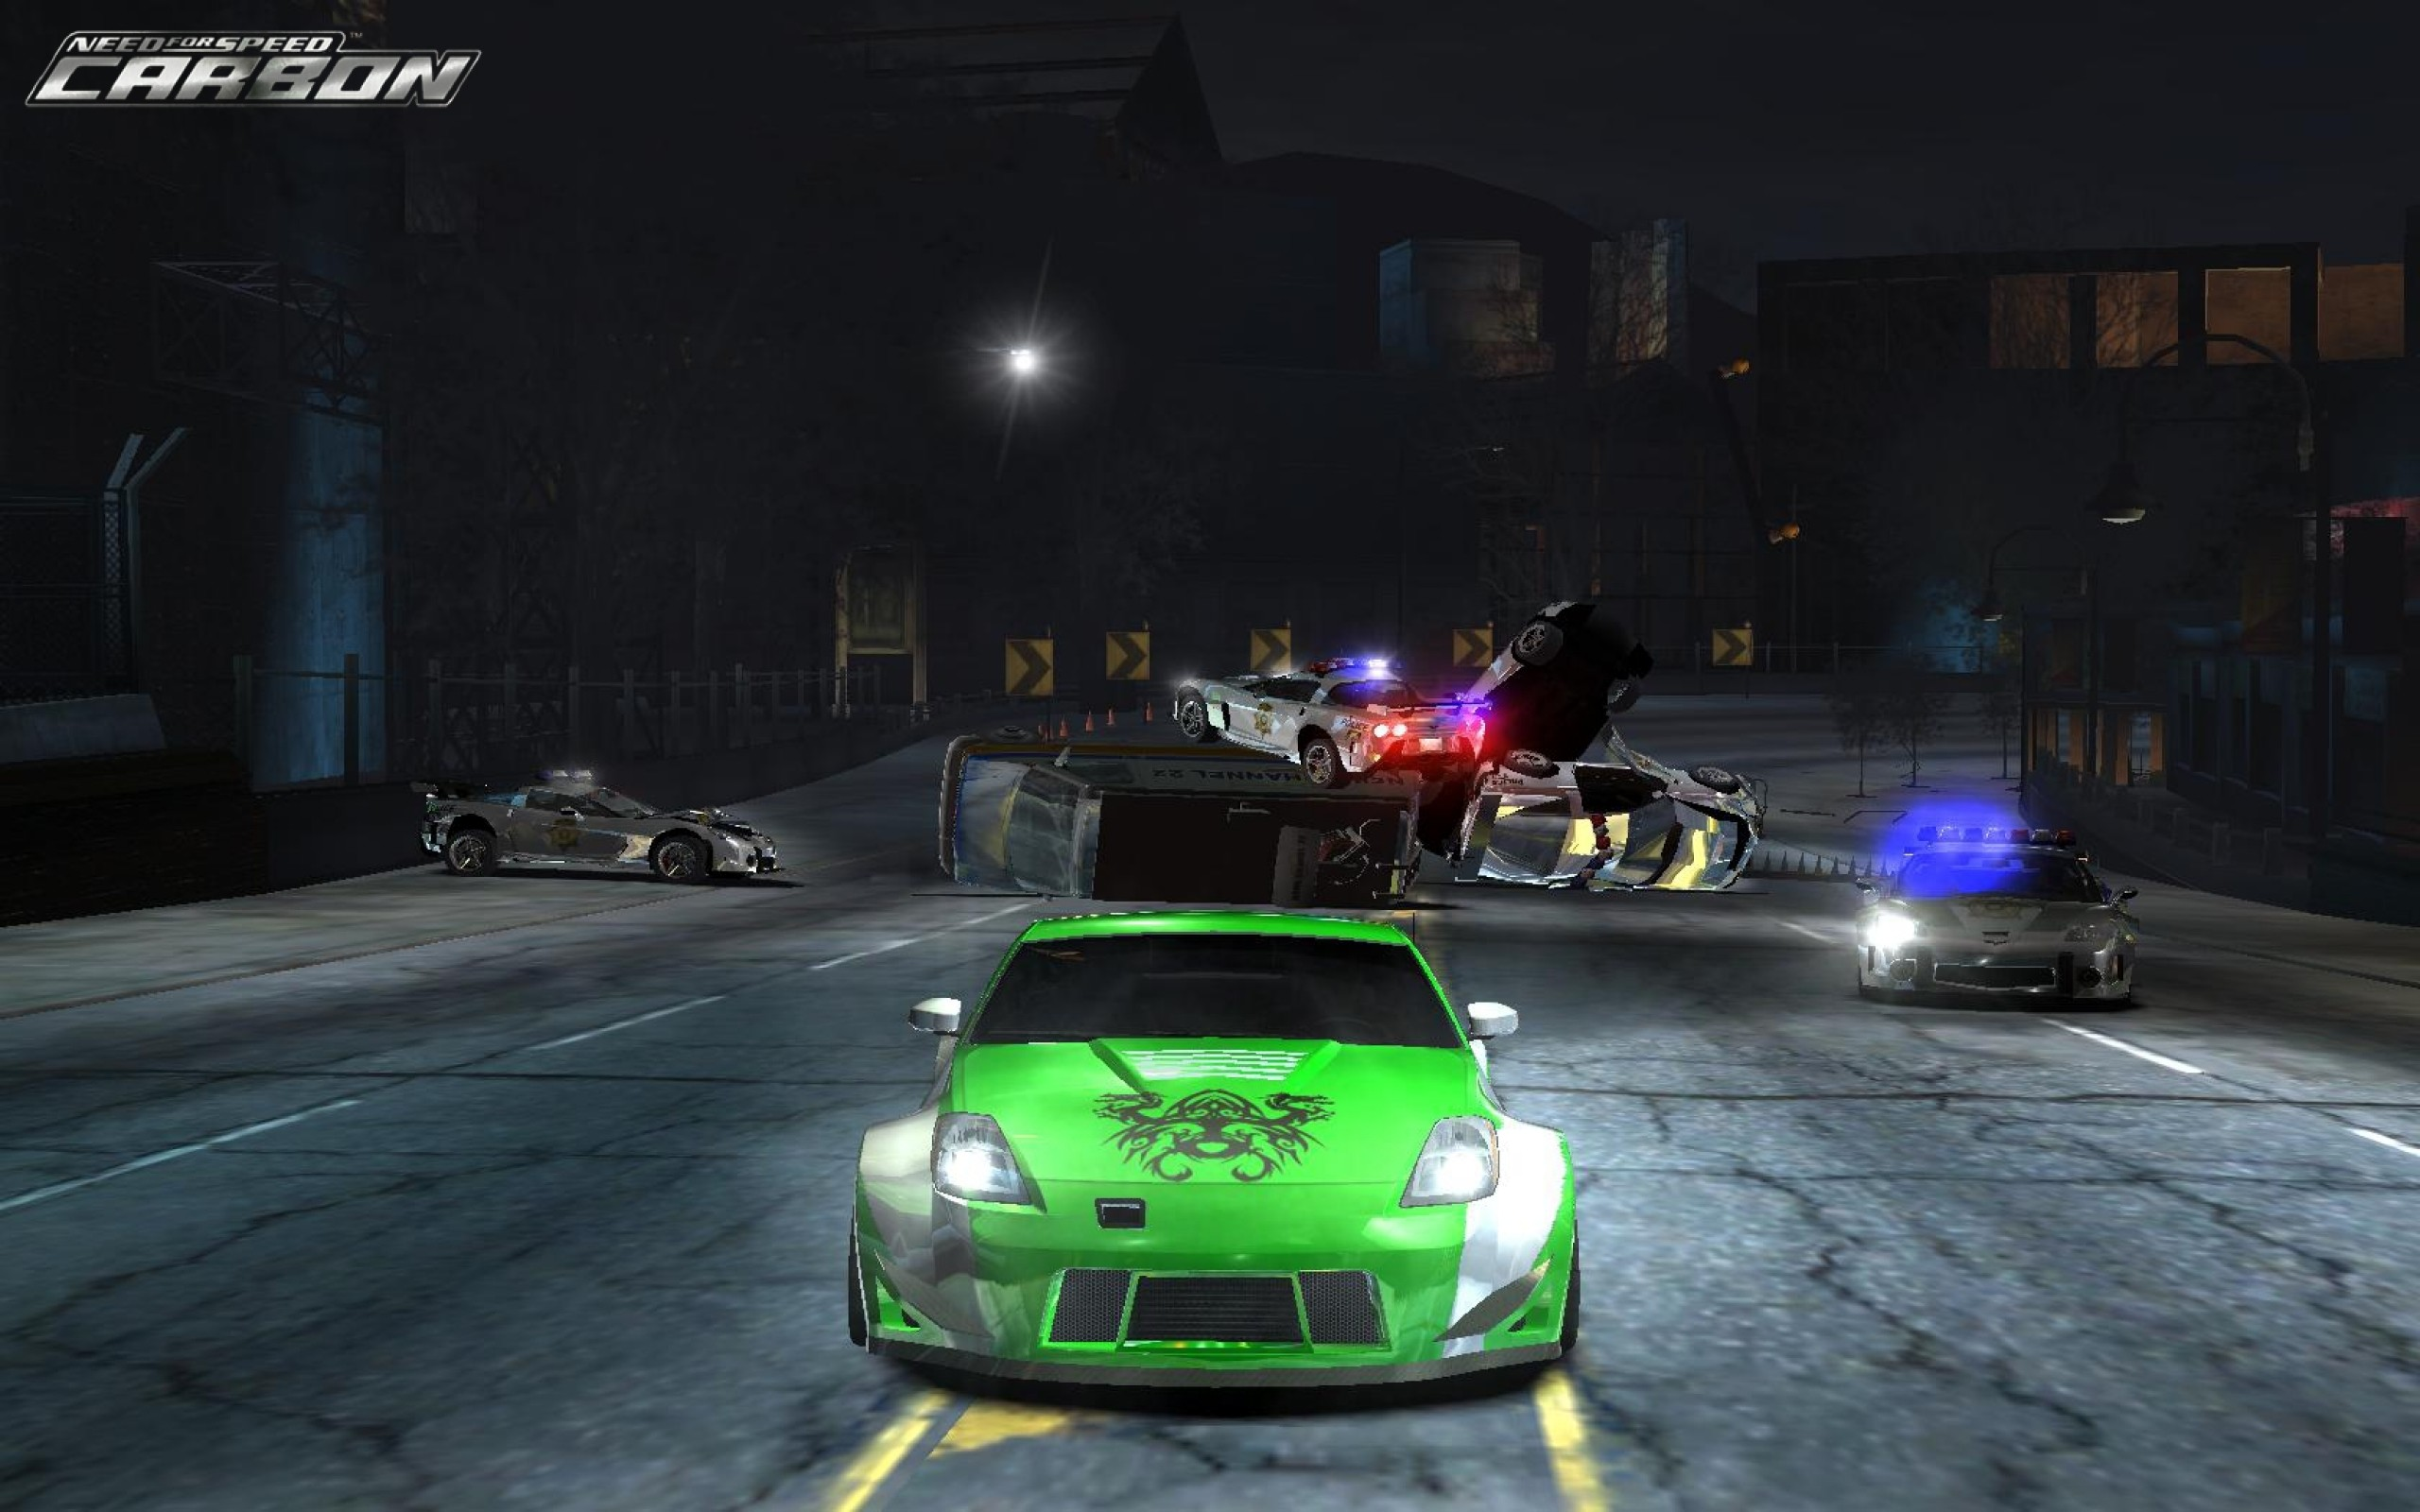 2560x1600 video games need for speed nissan 350z need for speed carbon games pc games  1680x1050 wallpaper